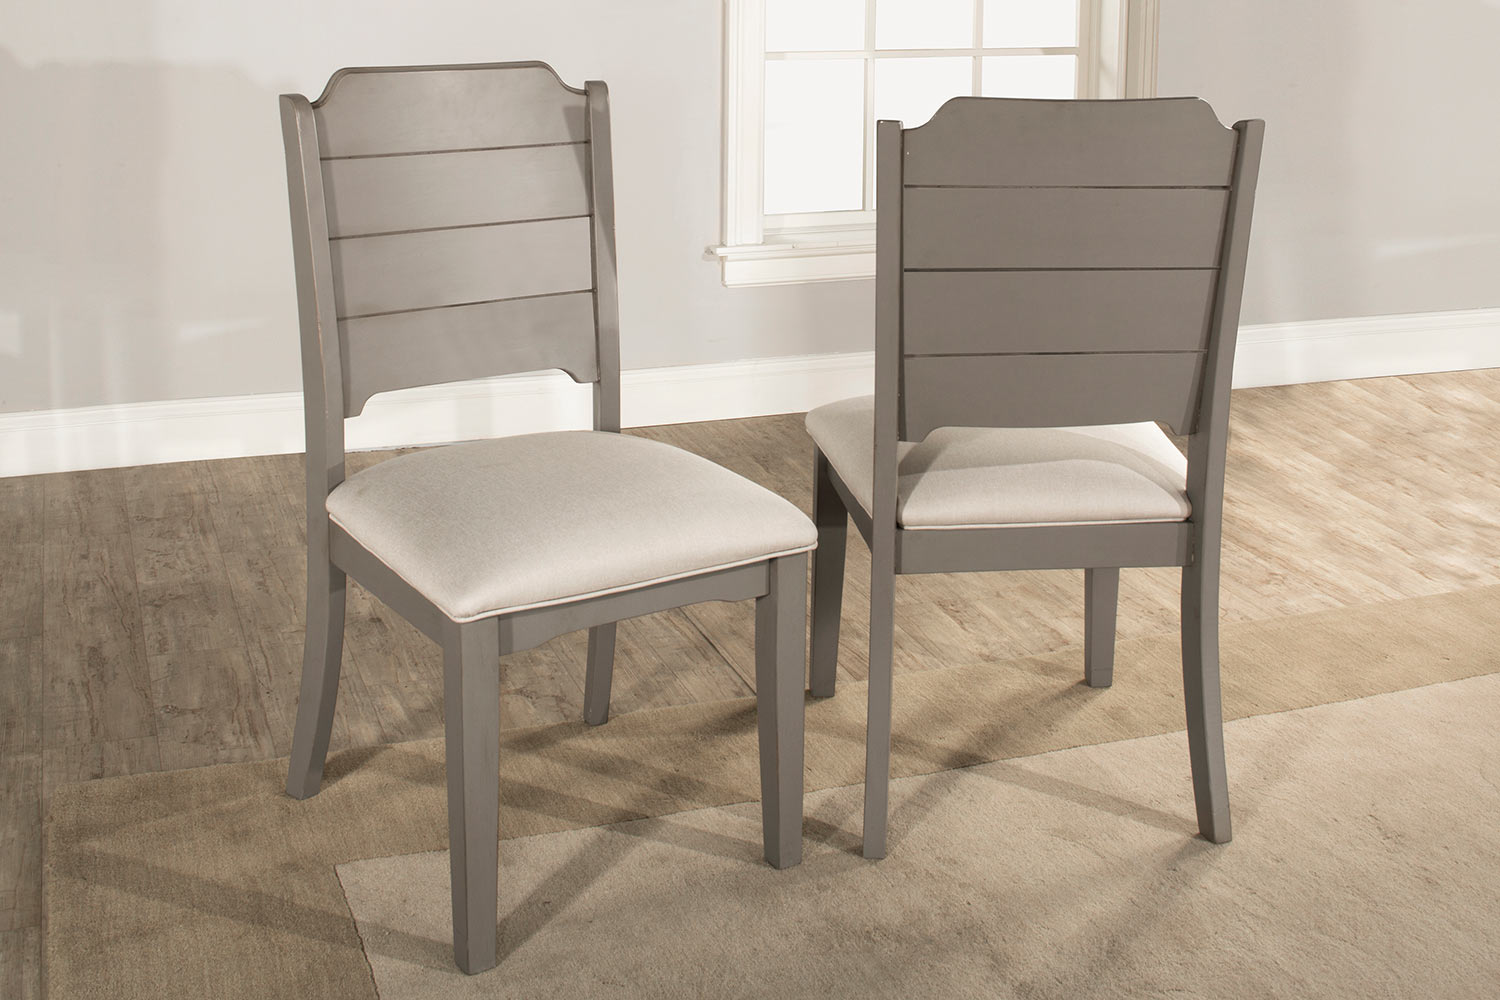 Hillsdale Clarion Dining Chair - Distressed Gray - Fog Fabric